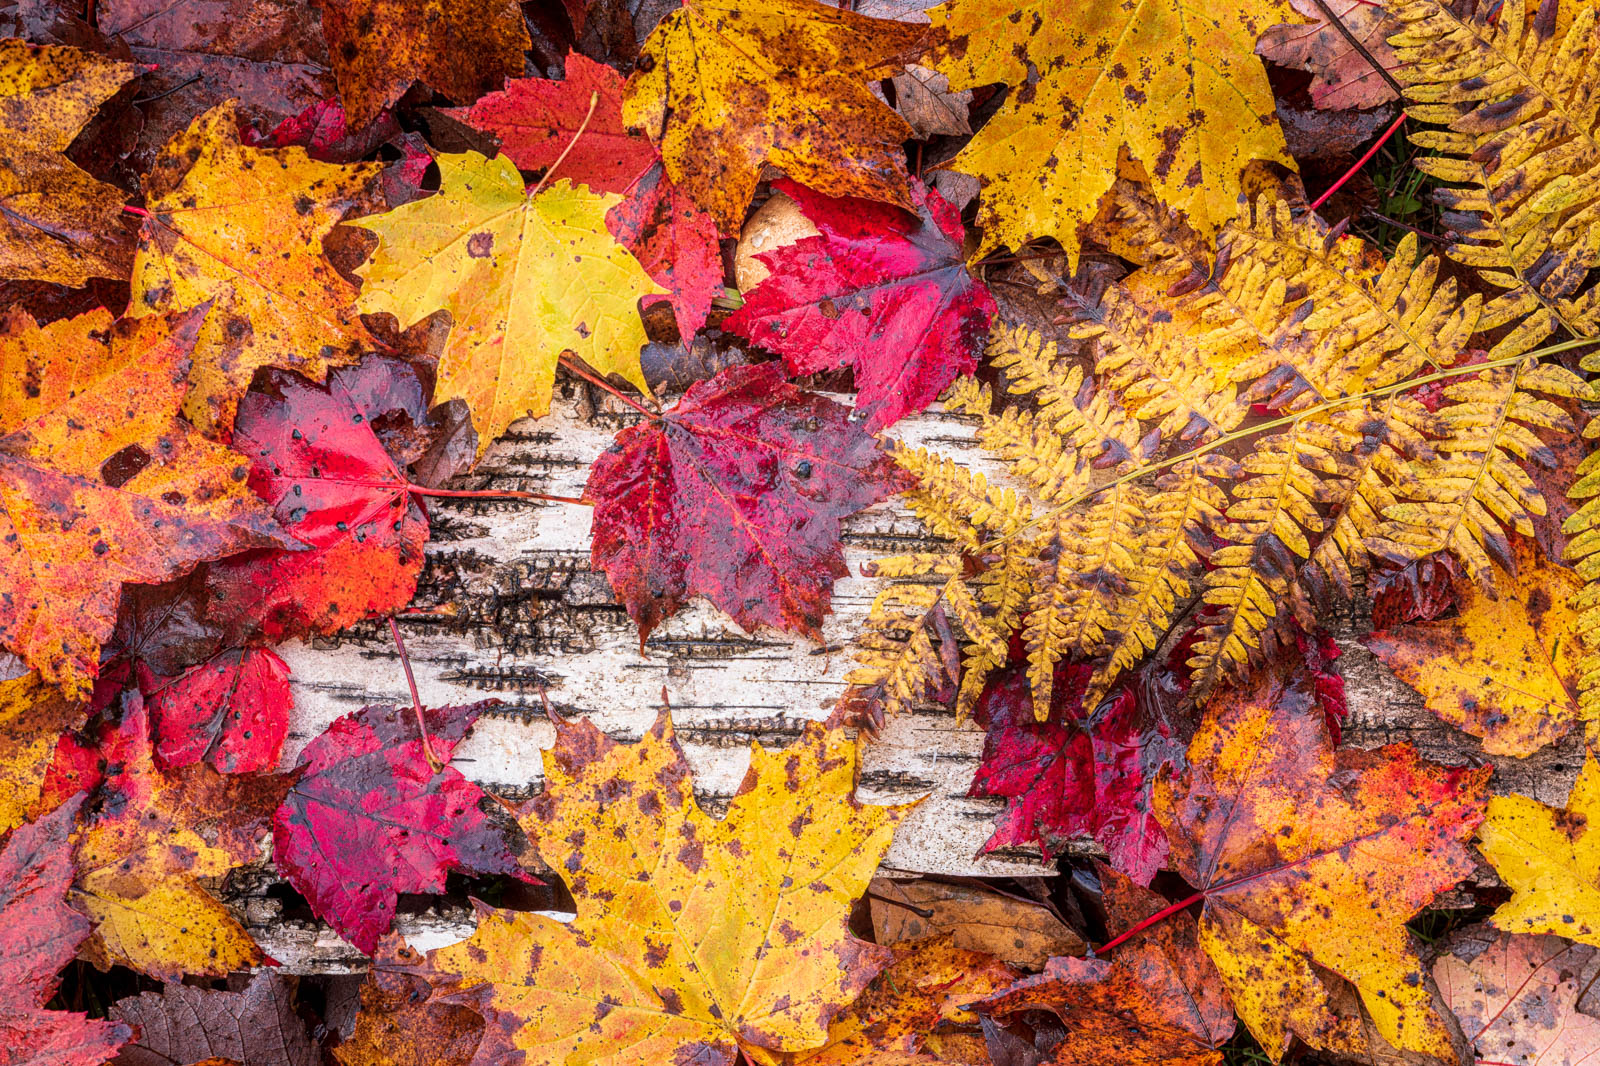 Autumn leaves on the forest floor, Groton State Forest, Vermont.